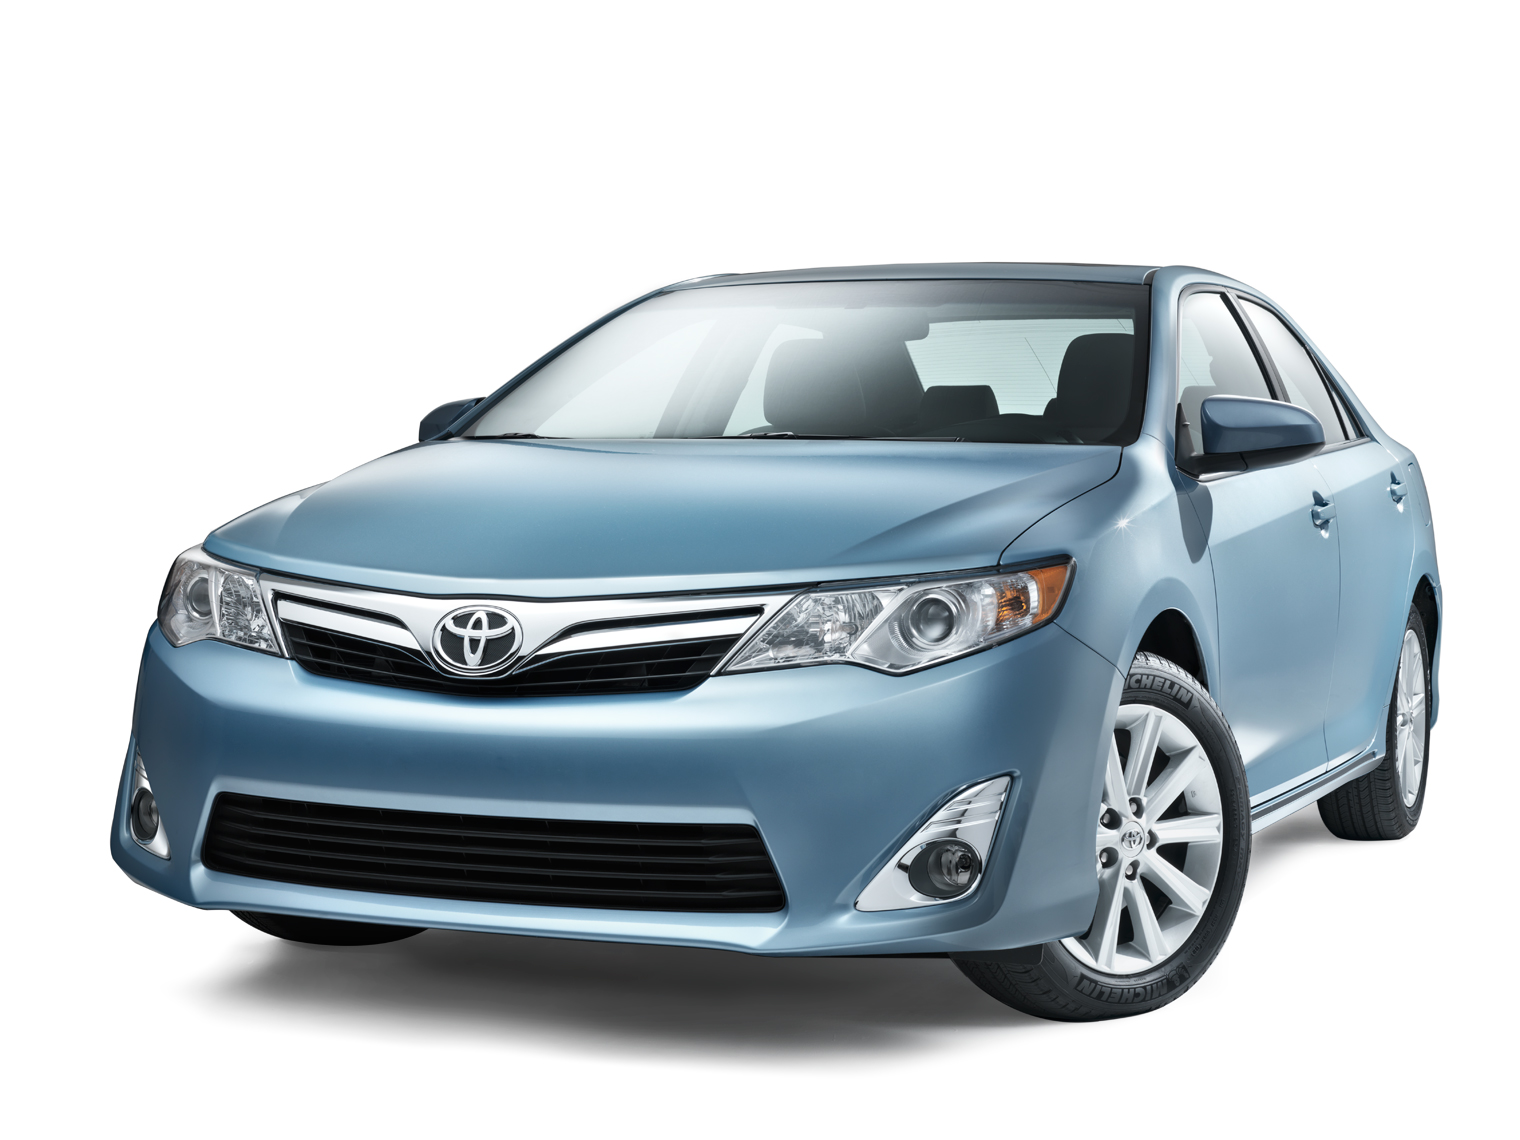 Toyota_Camry_Front_34.jpg